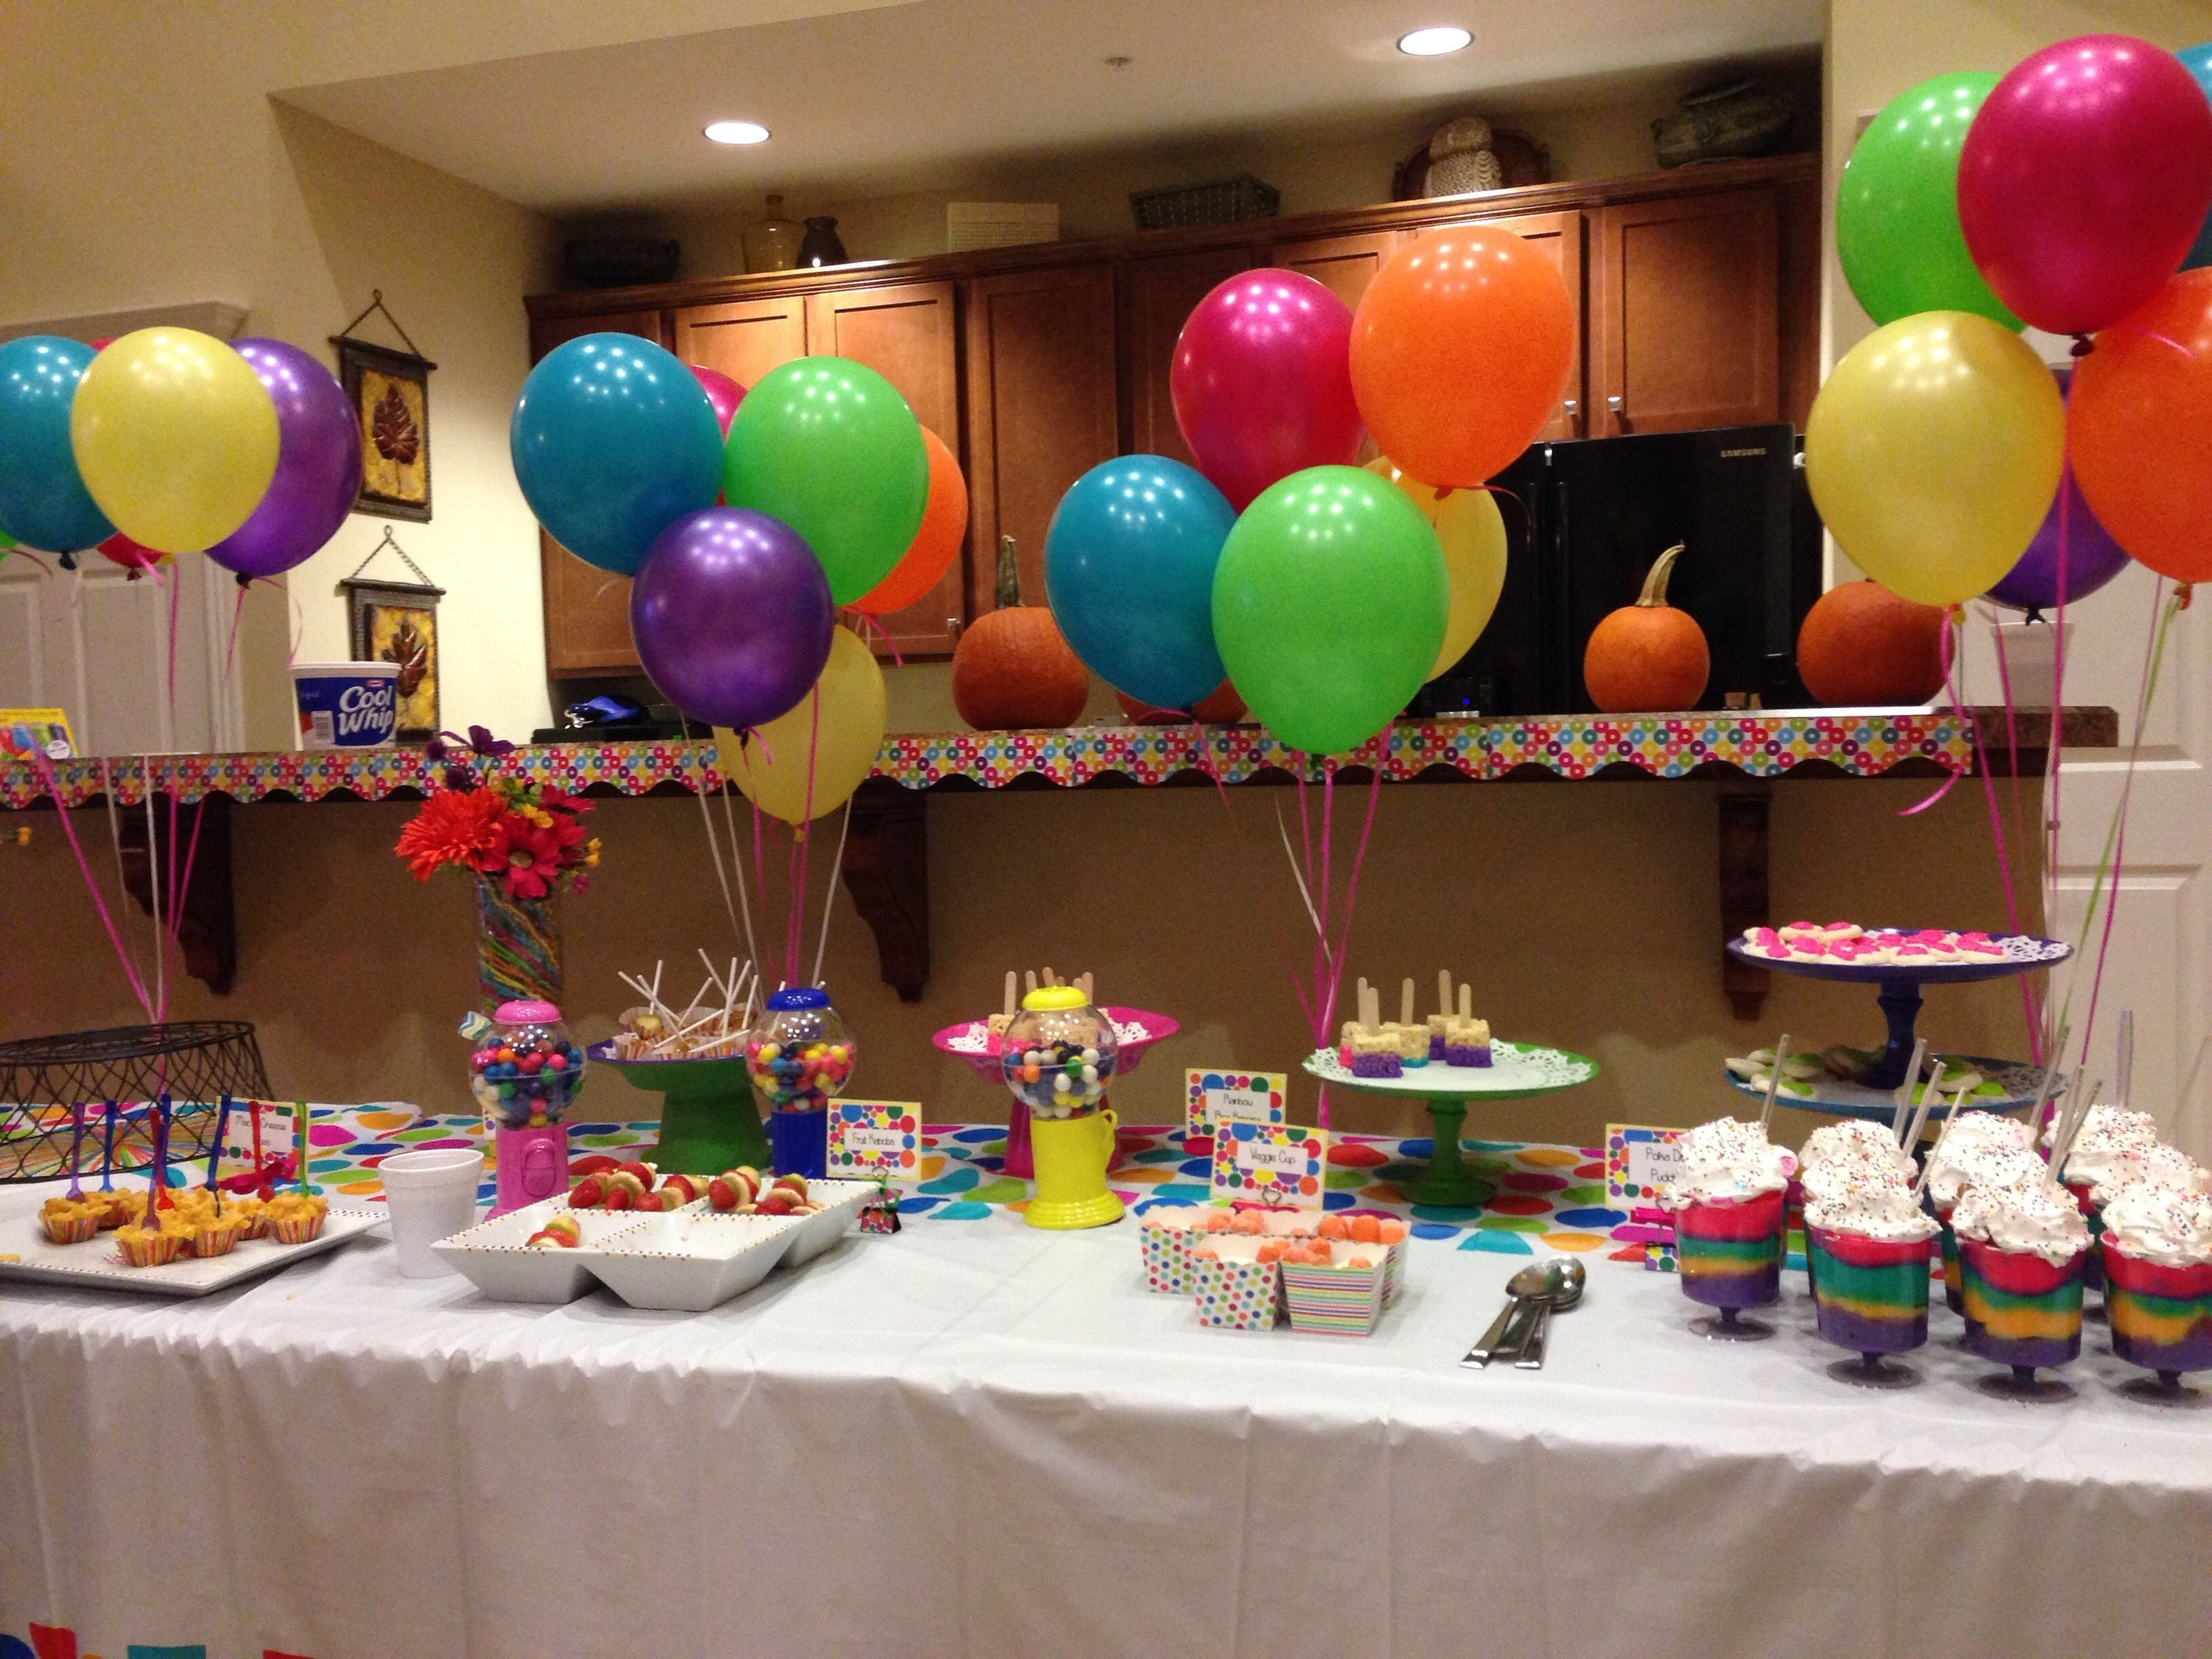 10 Fashionable 2 Year Old Birthday Ideas 4 Party For